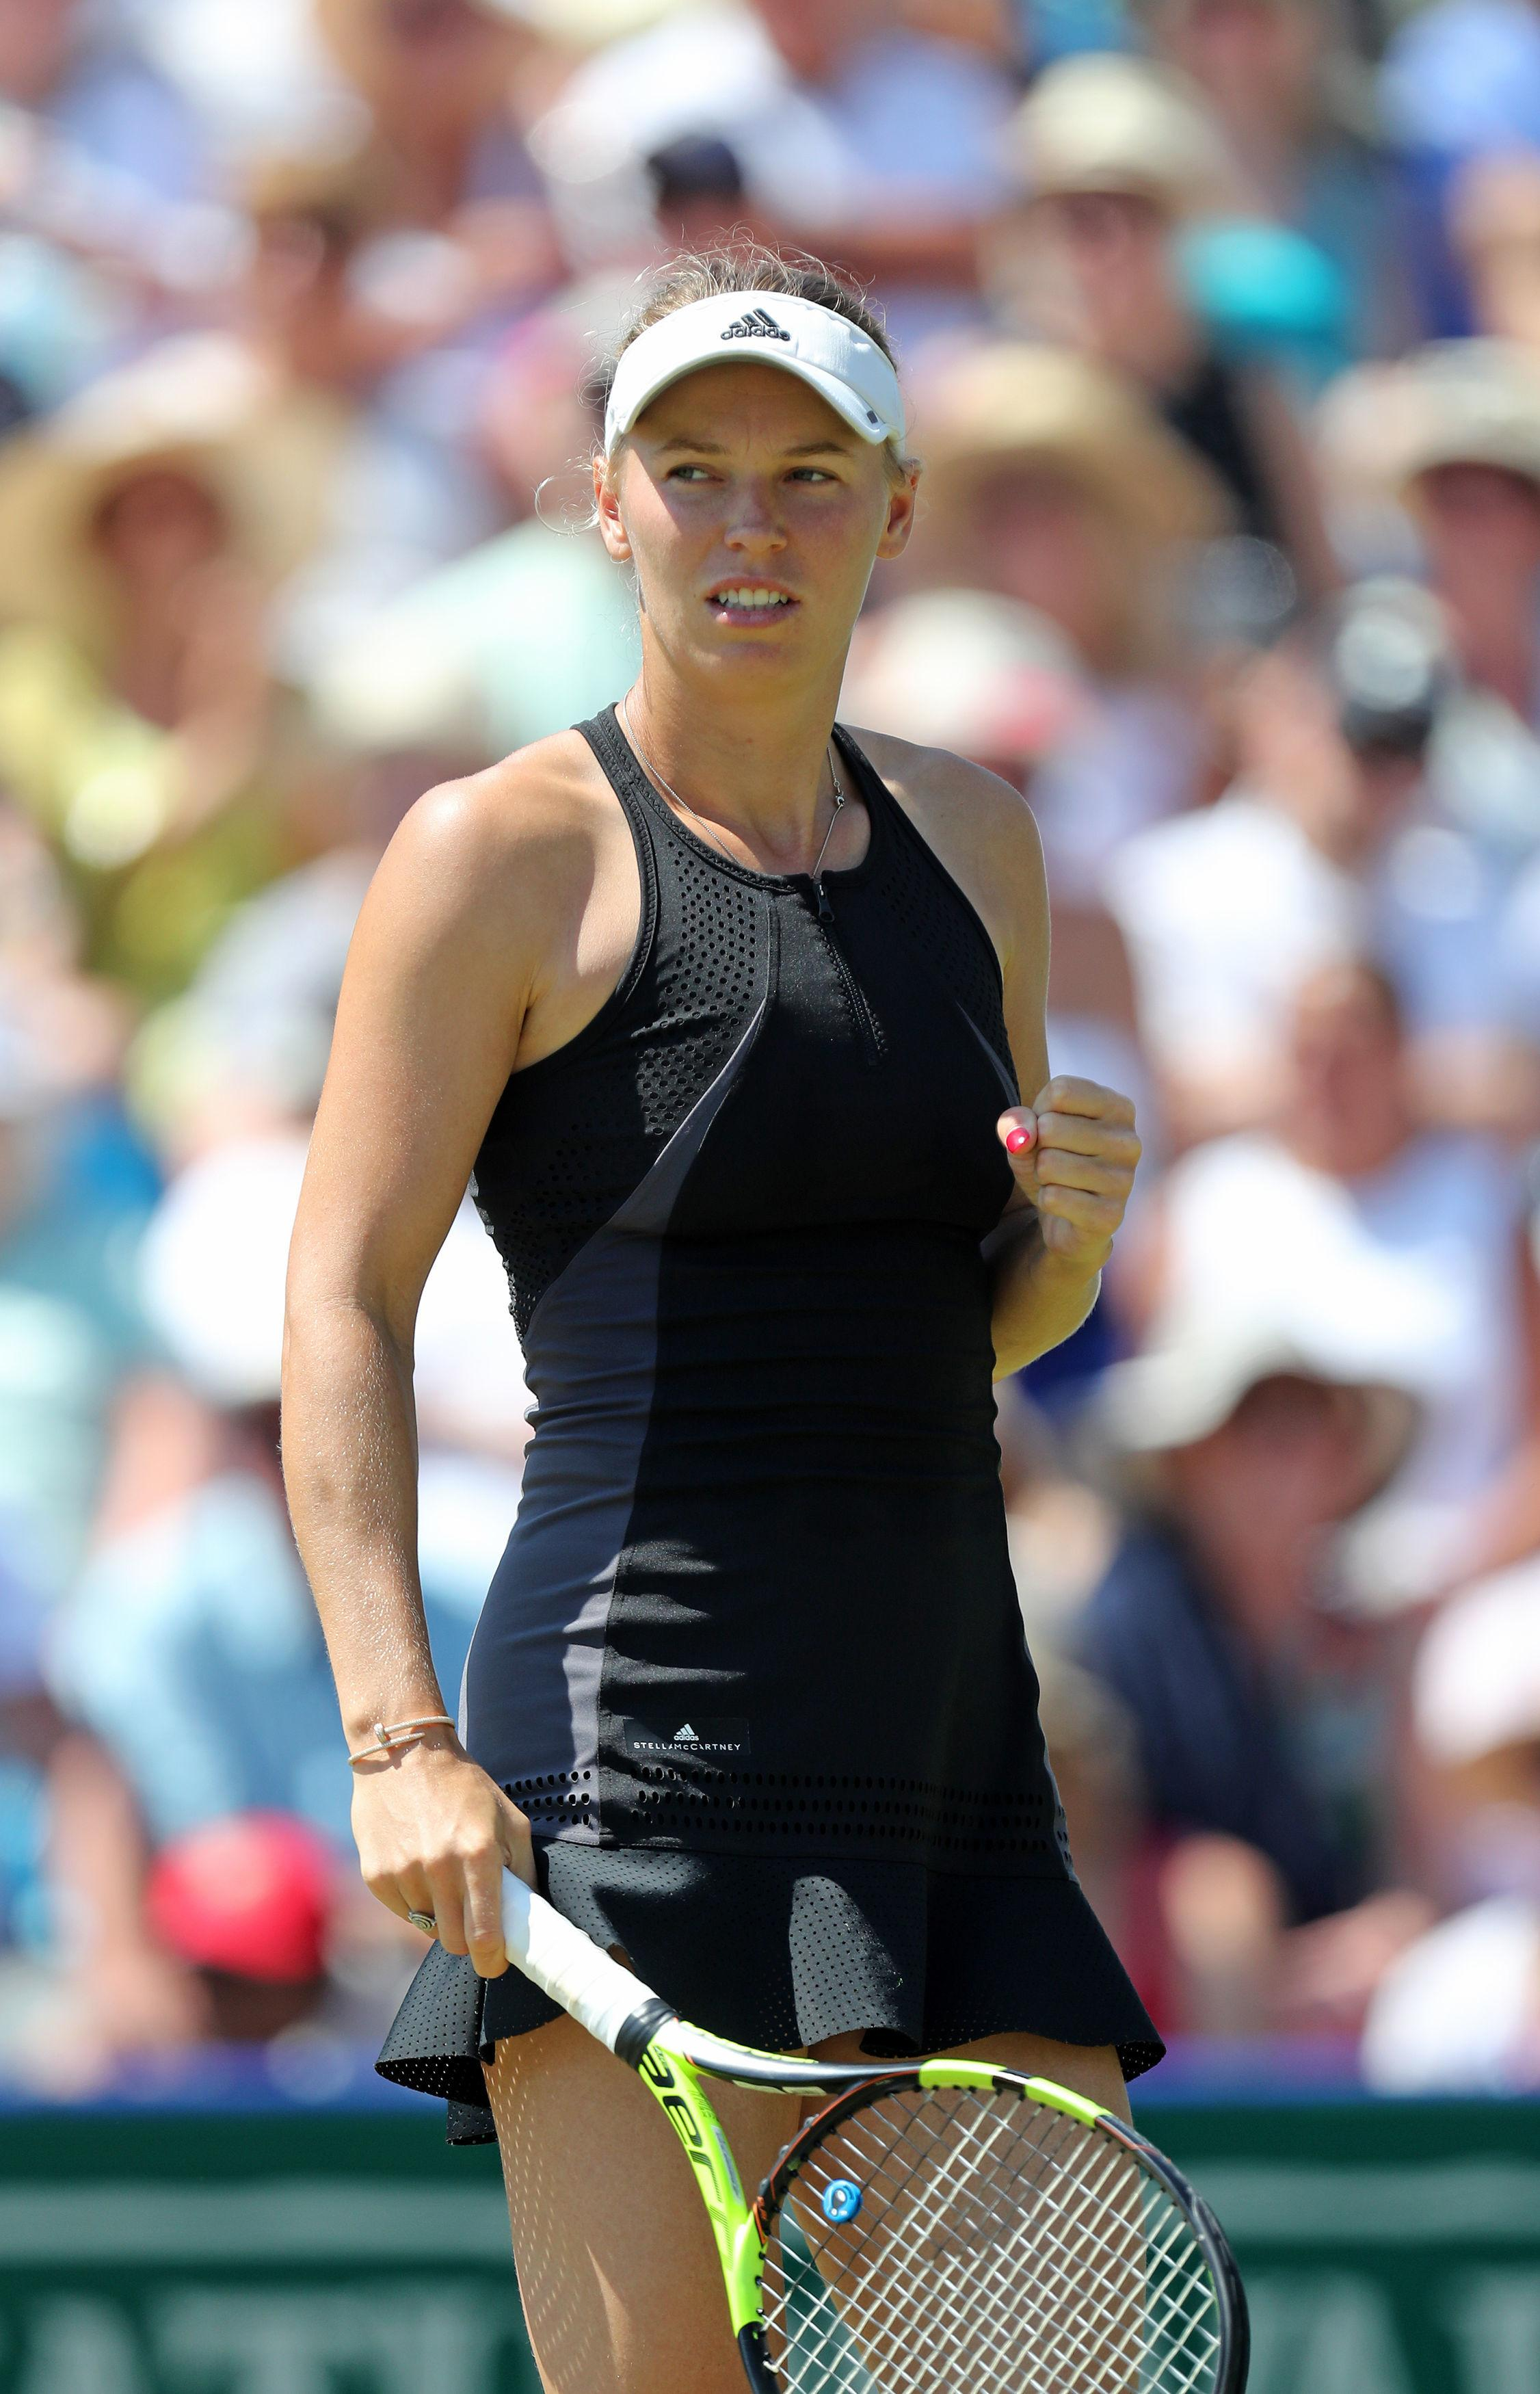 The Danish player begins her US Open campaign today